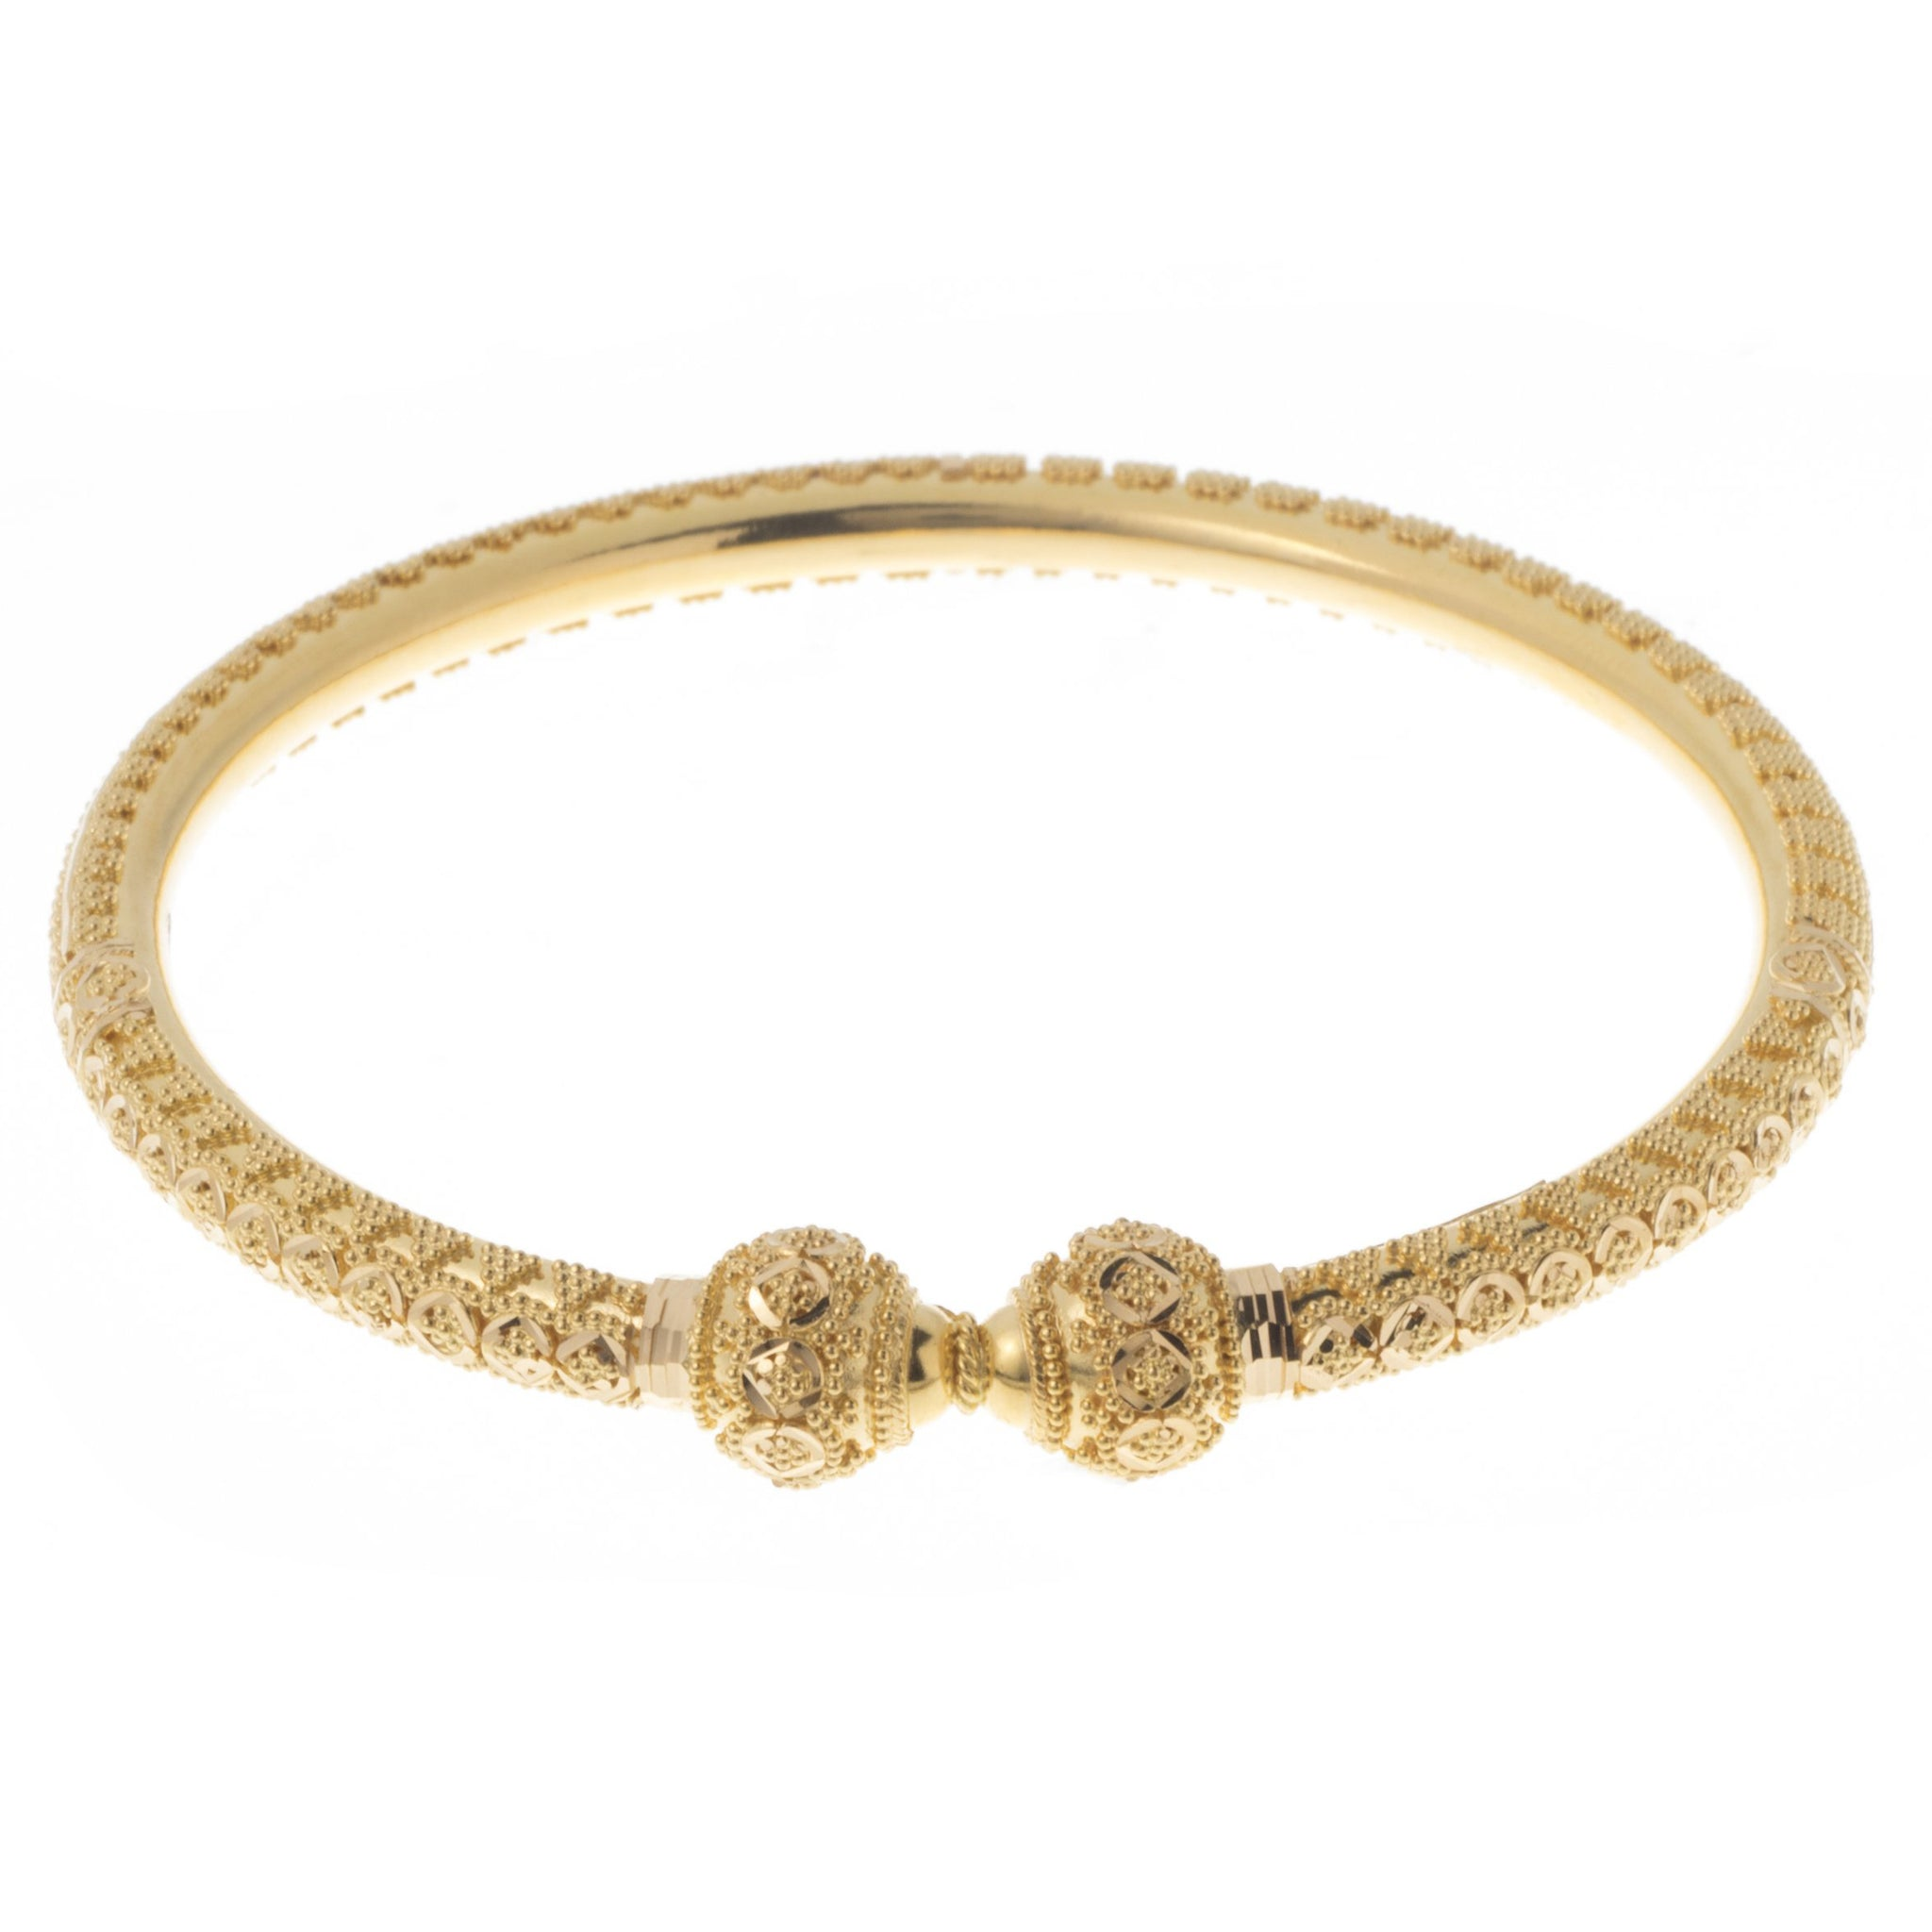 242db7998c52d 22ct Gold Bangles with Diamond Cut Design and Comfort Fit B-7402